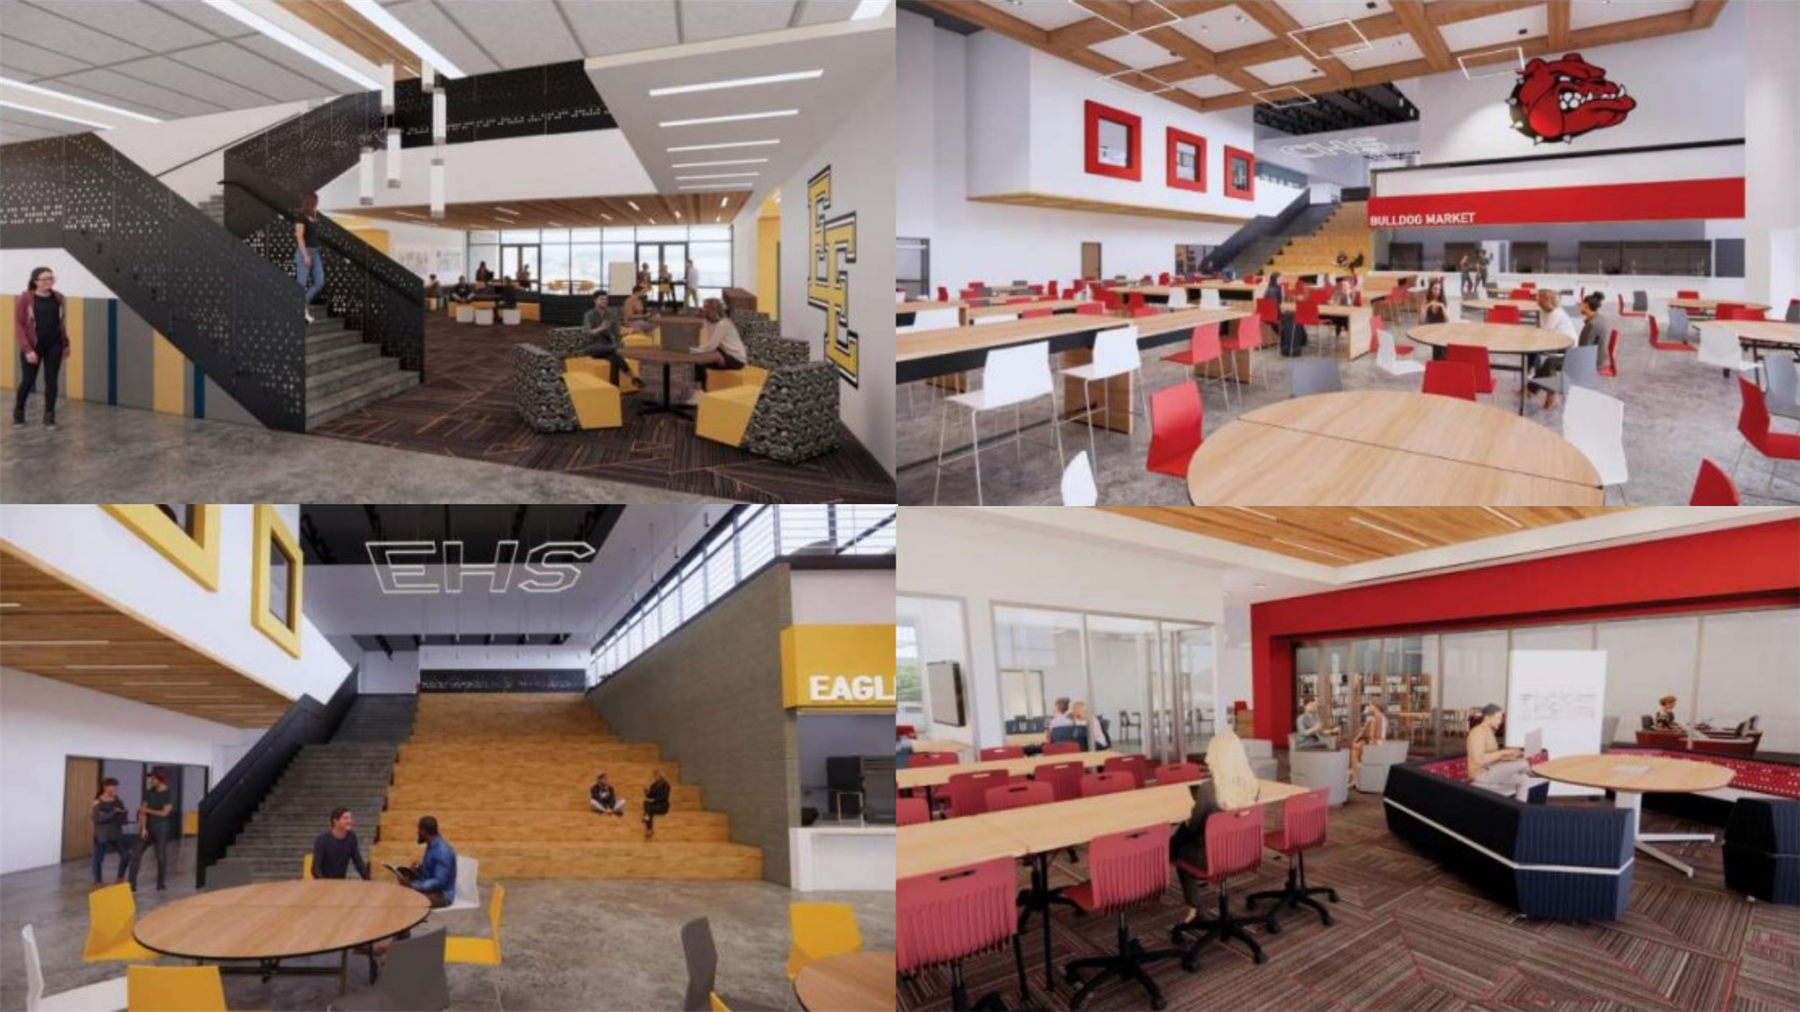 Design renderings of the interior of the new high schools